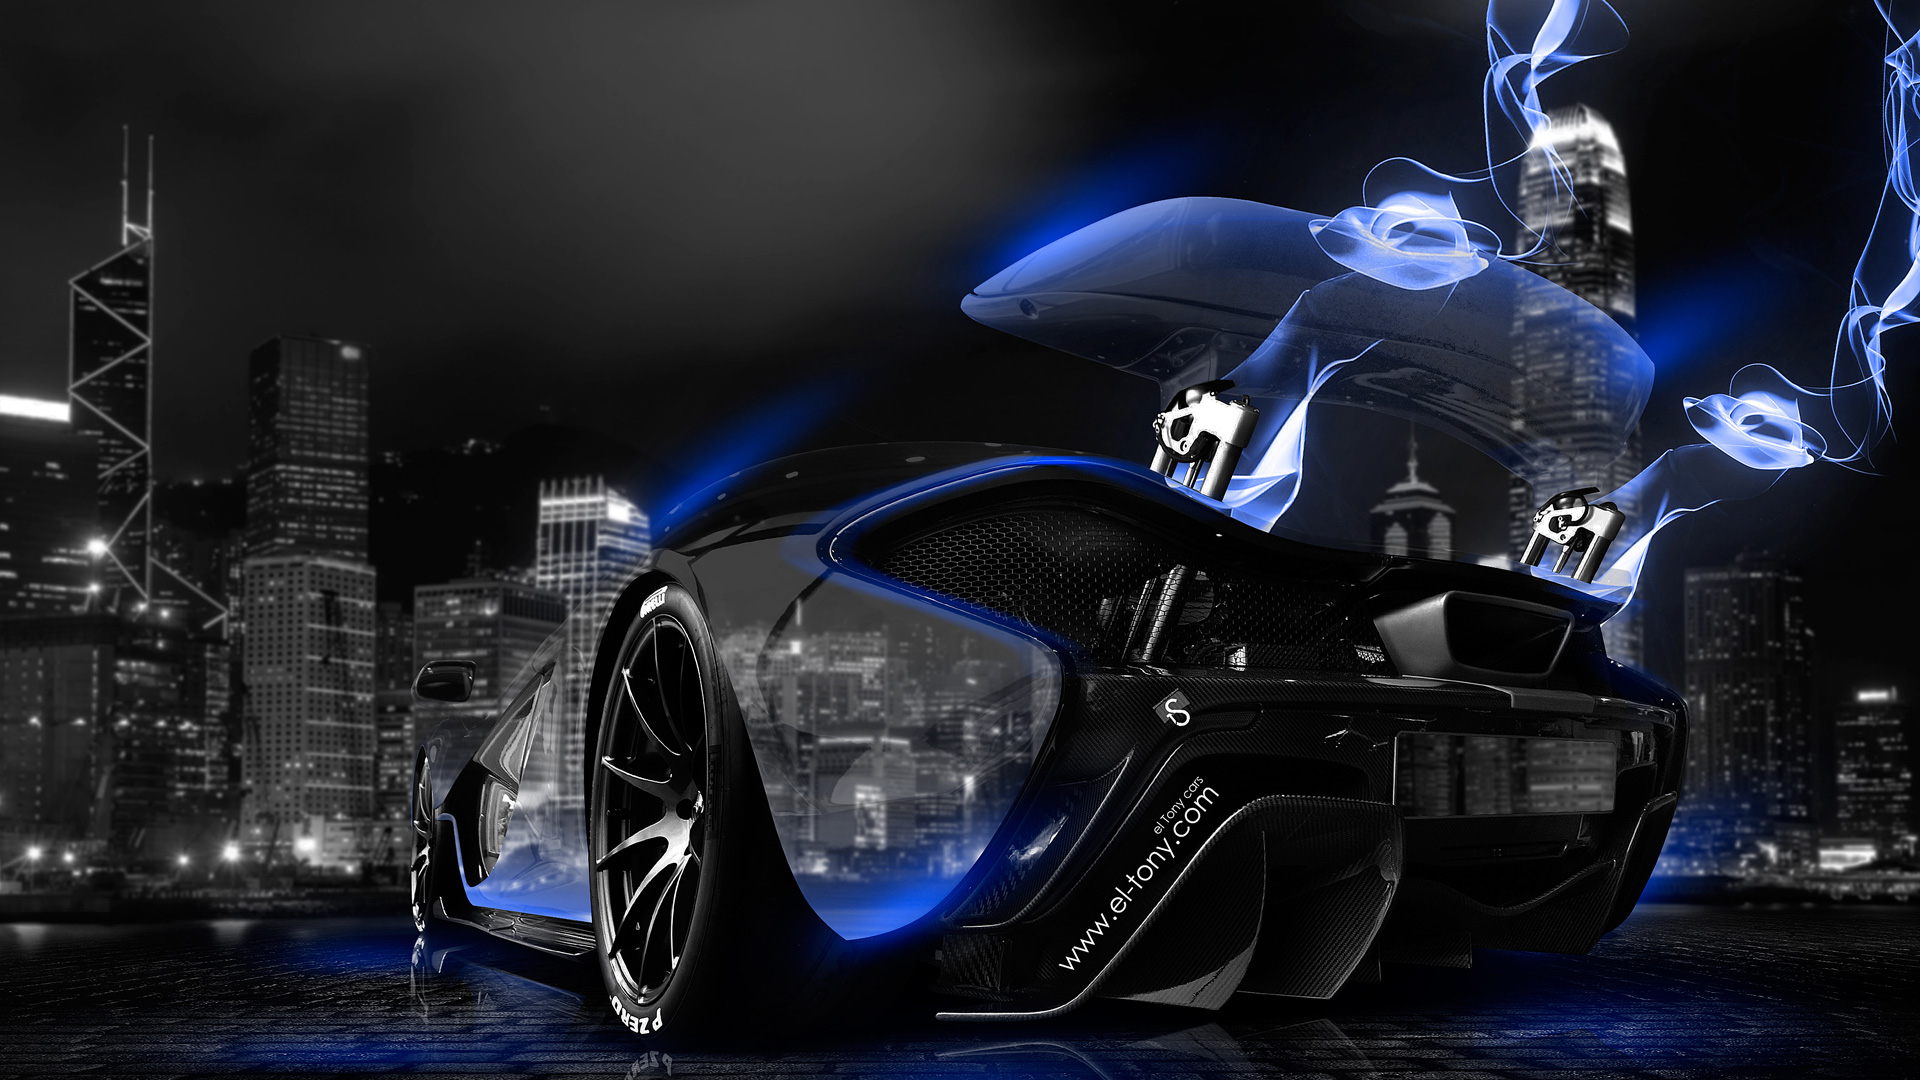 Gentil McLaren P1 Blue Neon Energy Crystal City Car